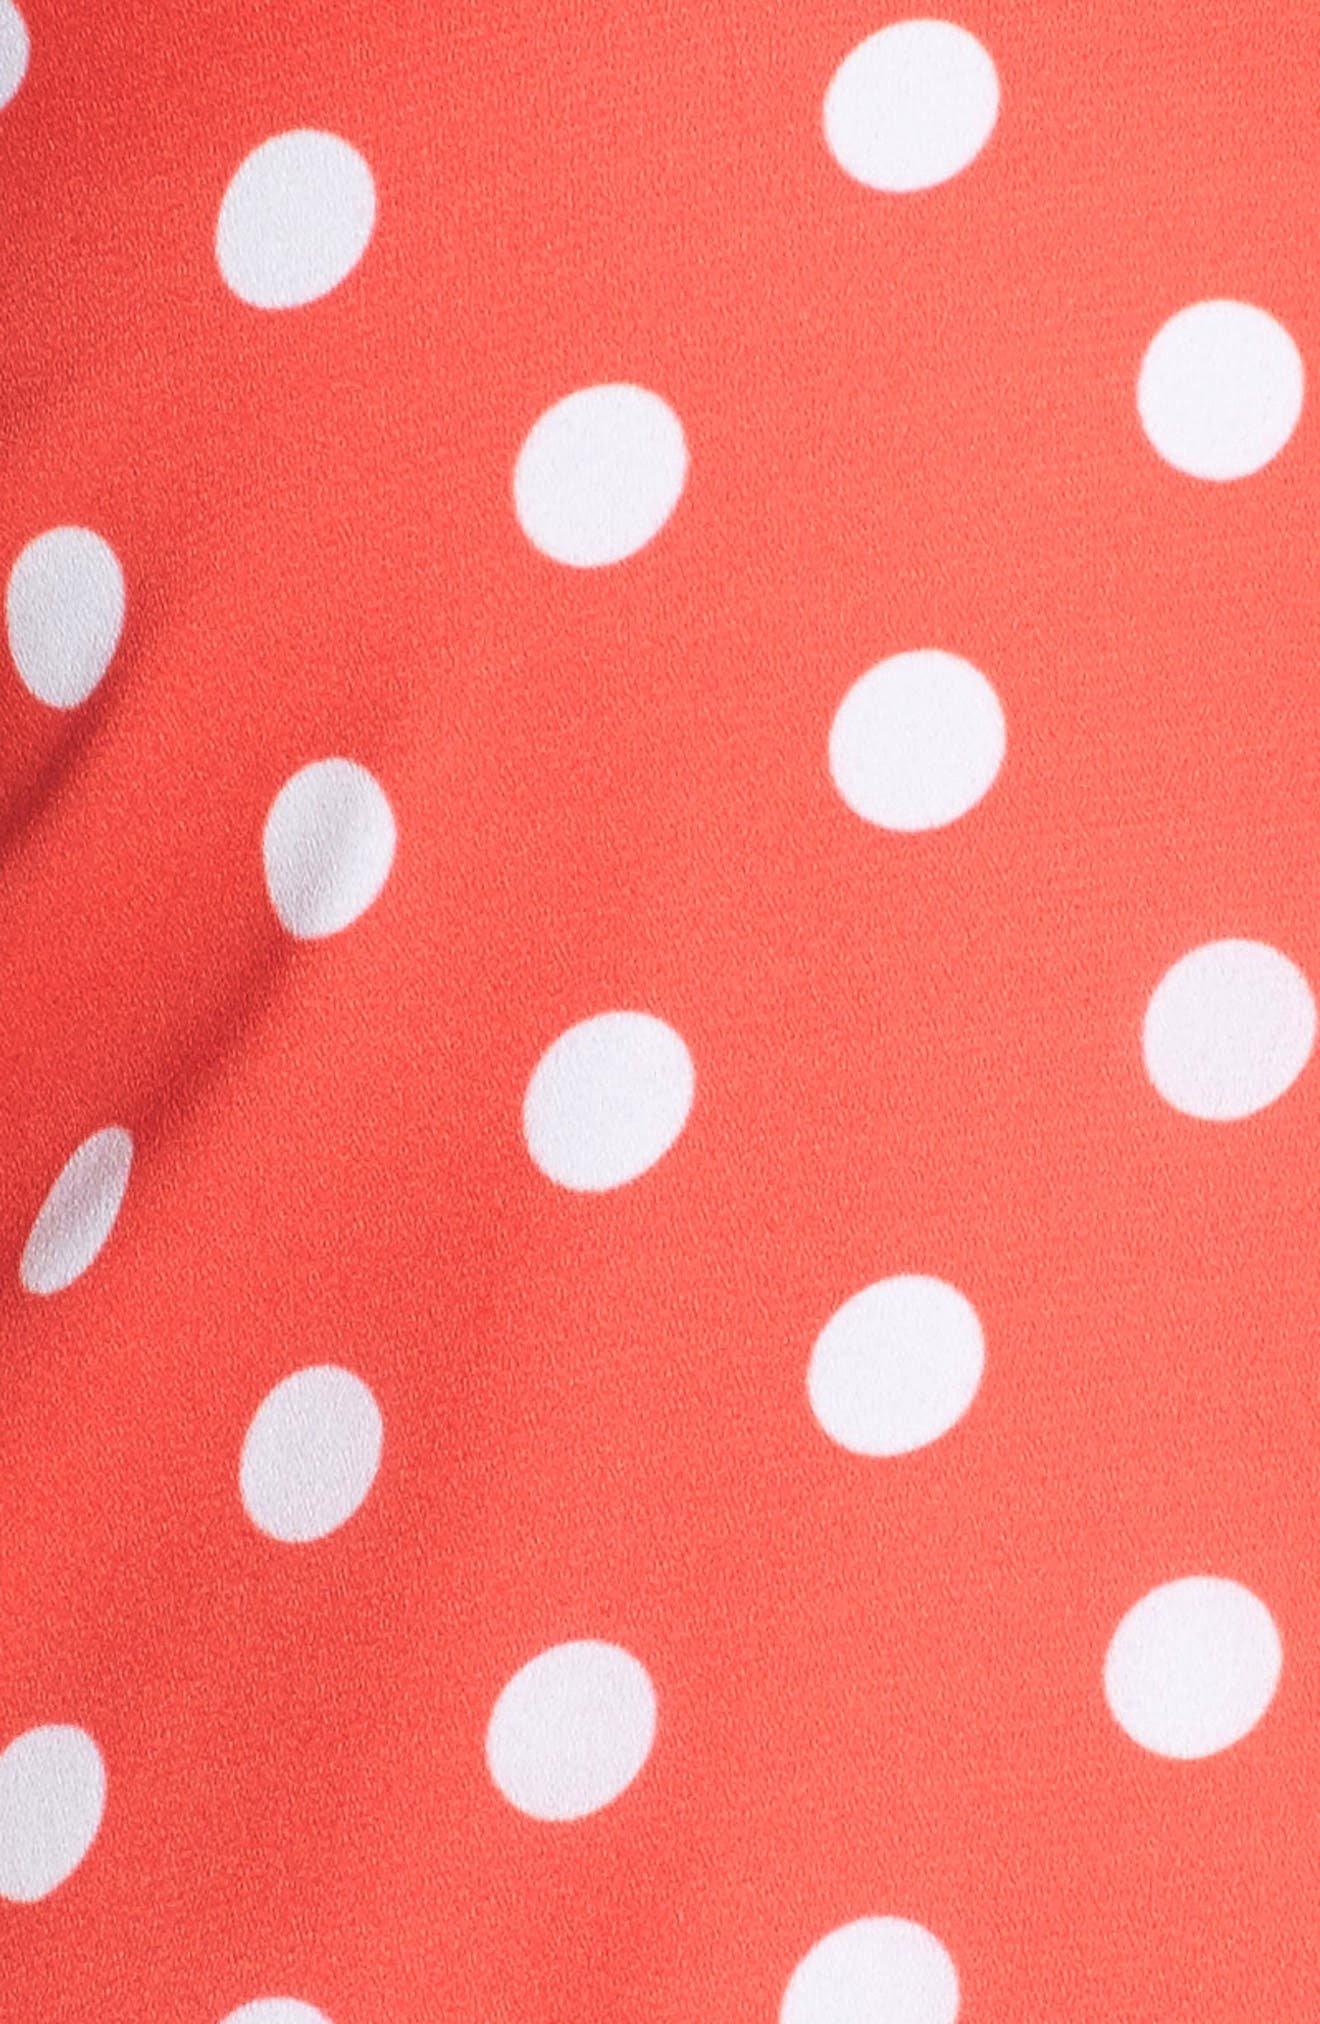 Flower Frolicking Midi Dress,                             Alternate thumbnail 5, color,                             Coral Polka Dot